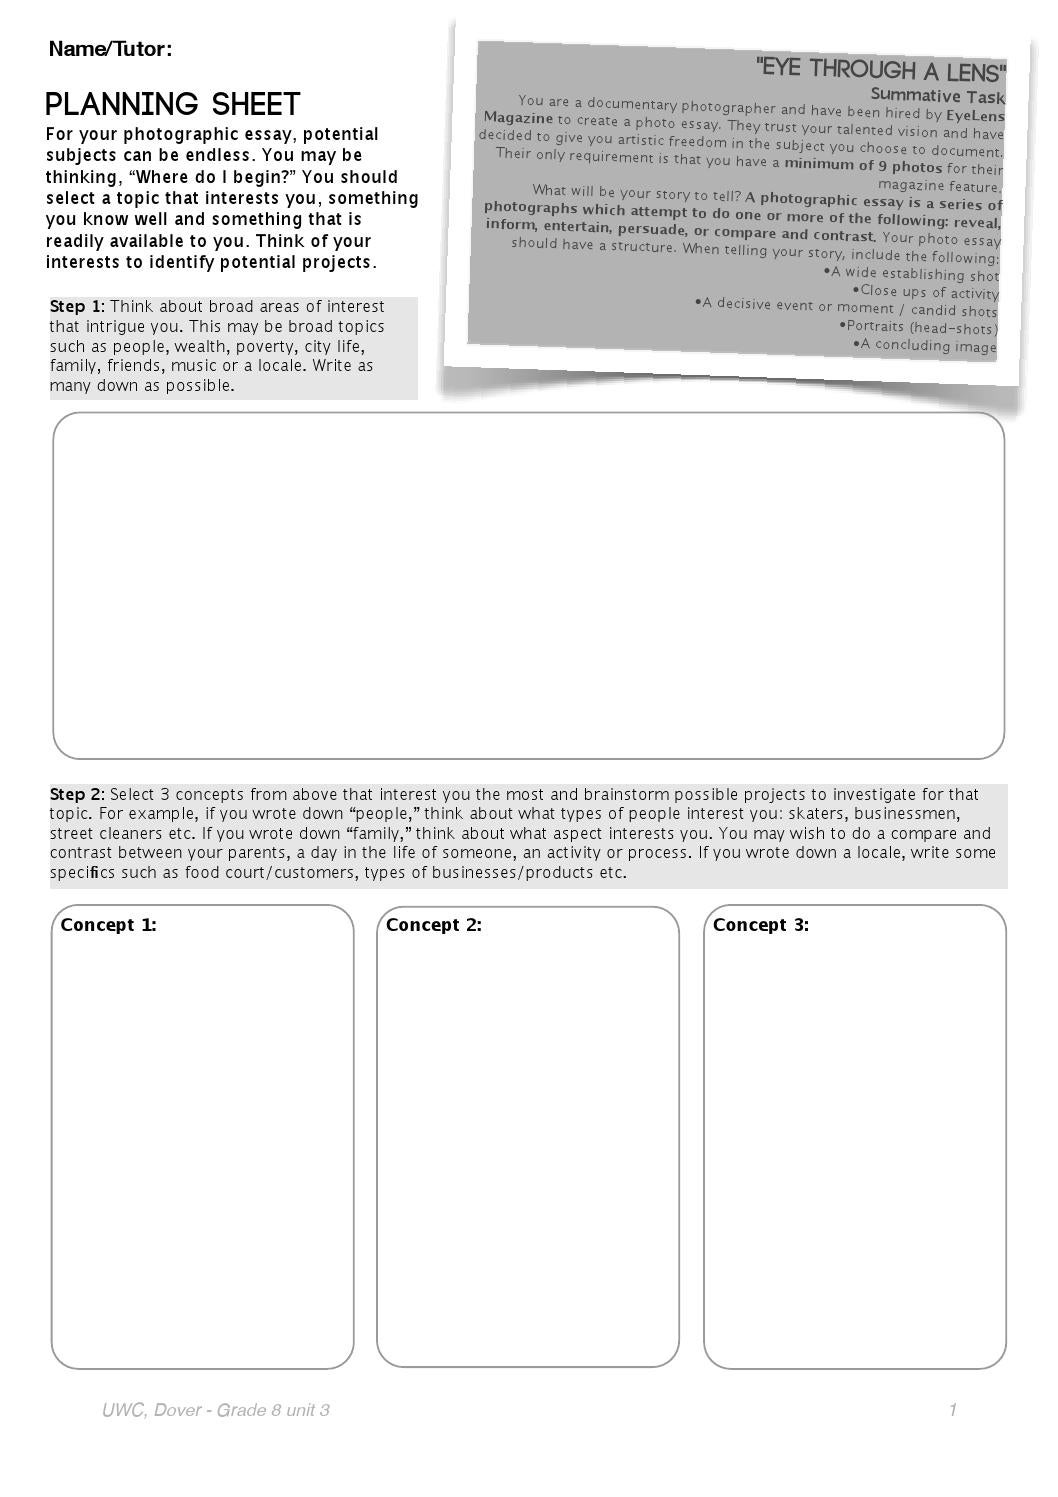 making a sheet a page in a document